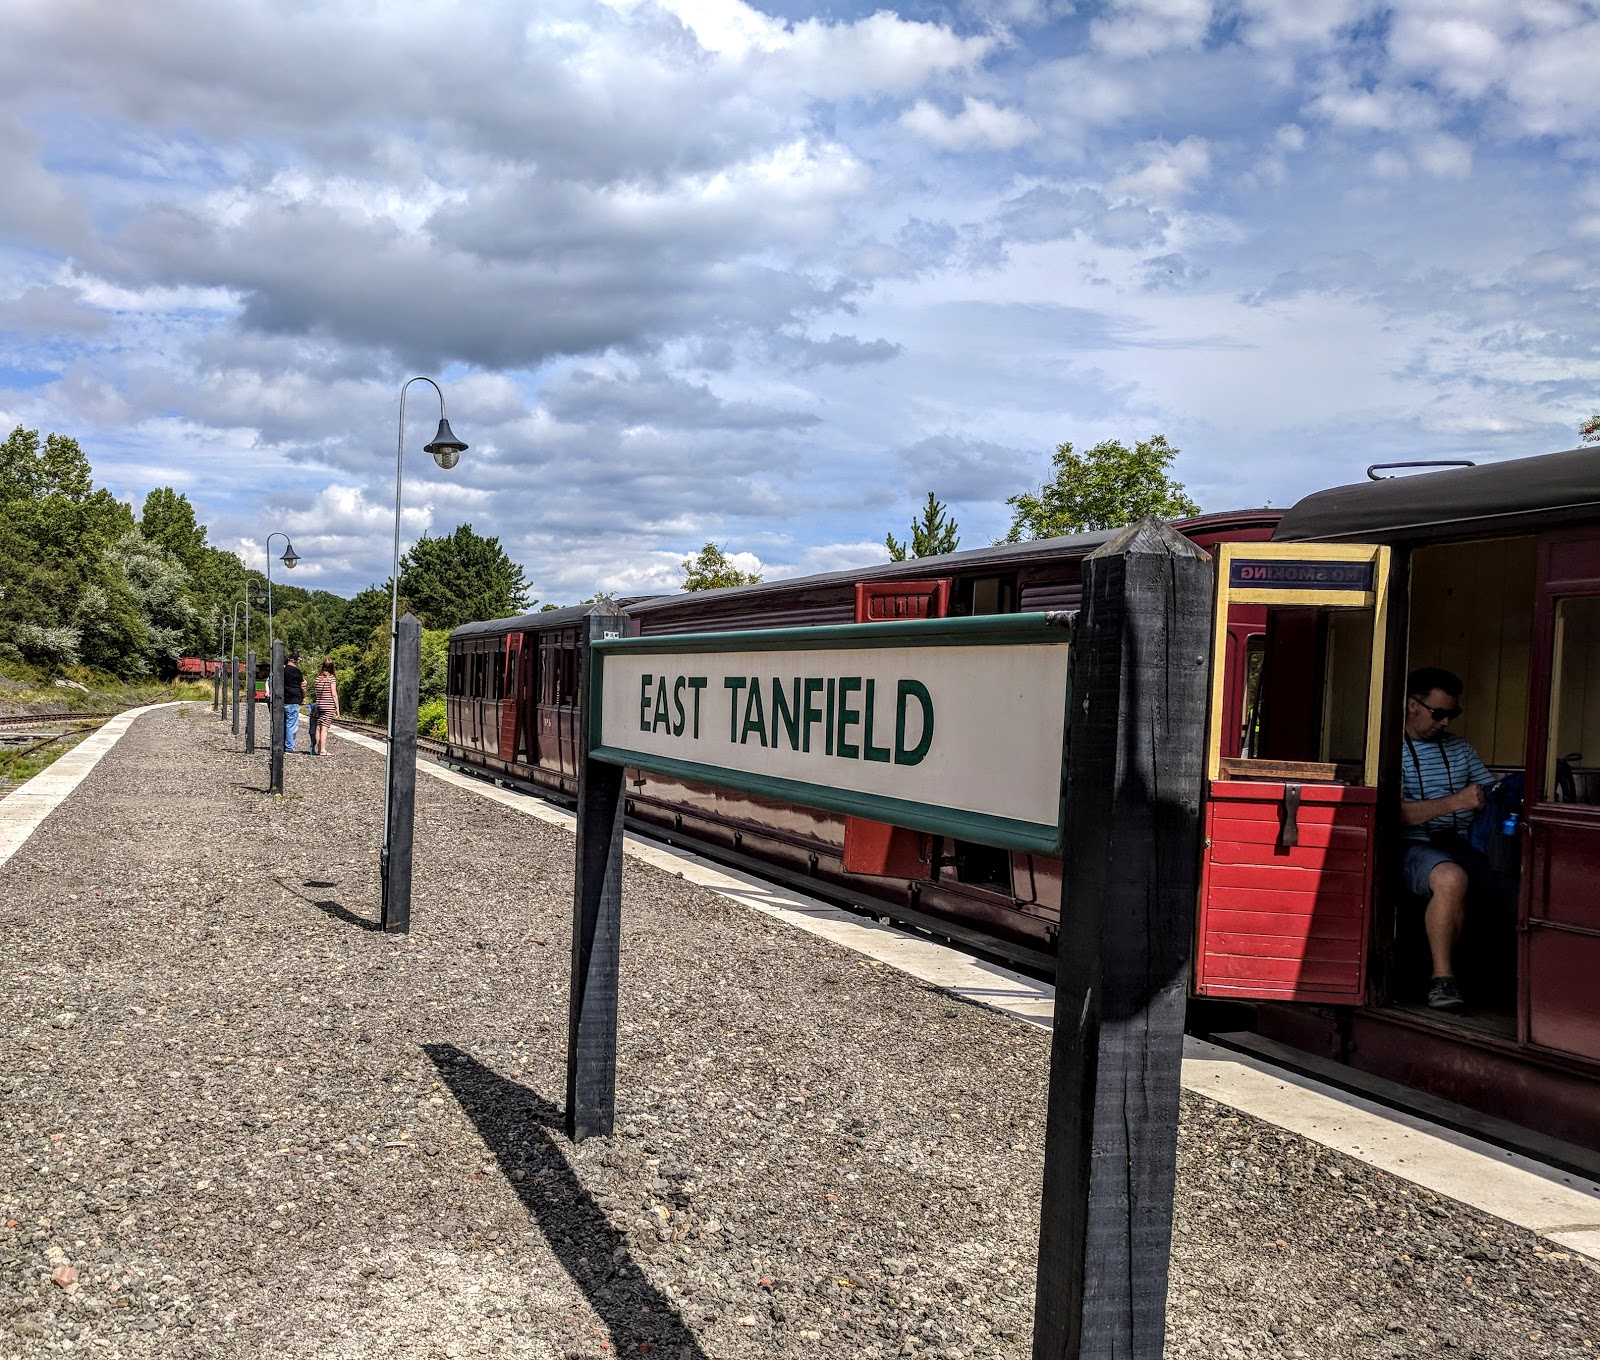 Tanfield Railway | Britain's Oldest Railway & a Picnic at Causey Arch - East Tanfield Station